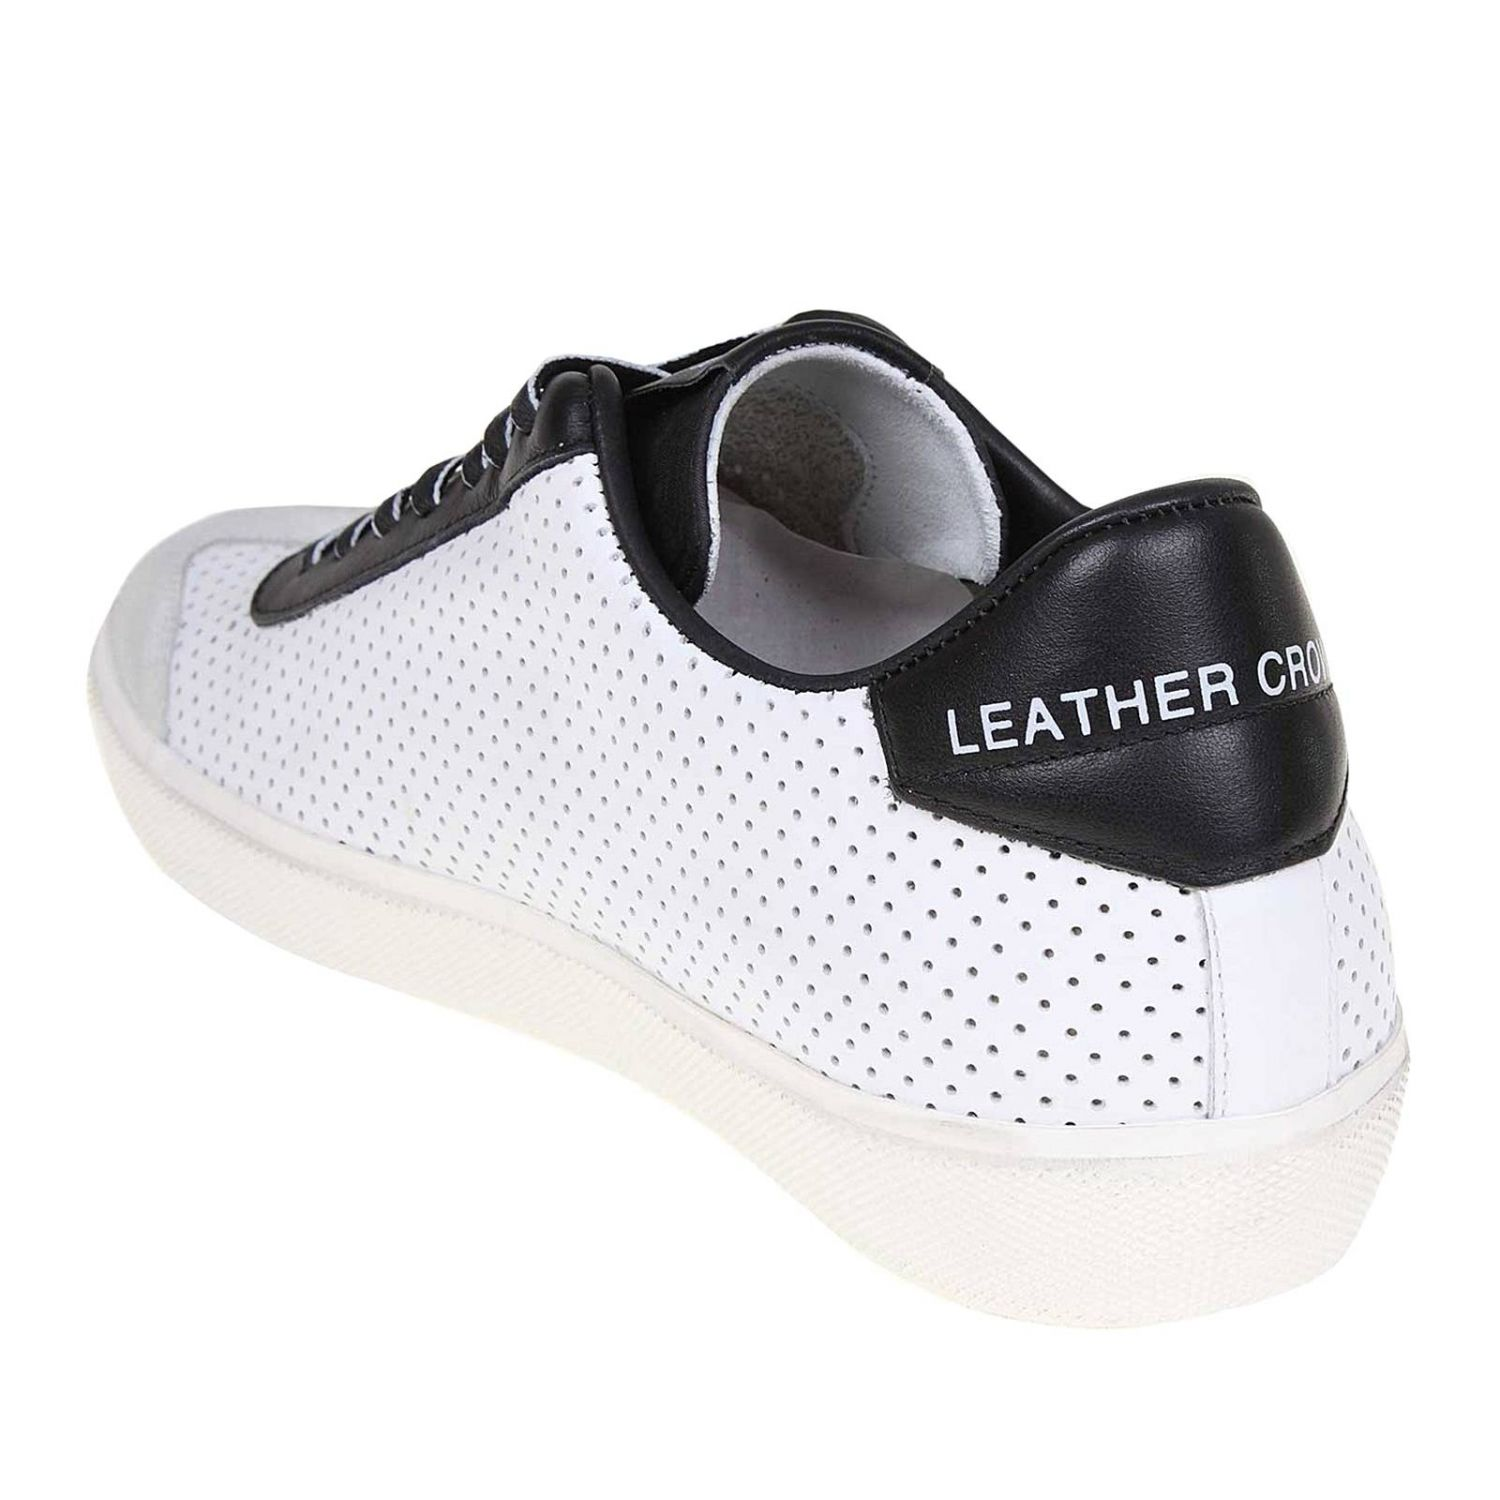 Trainers men Leather Crown white 4